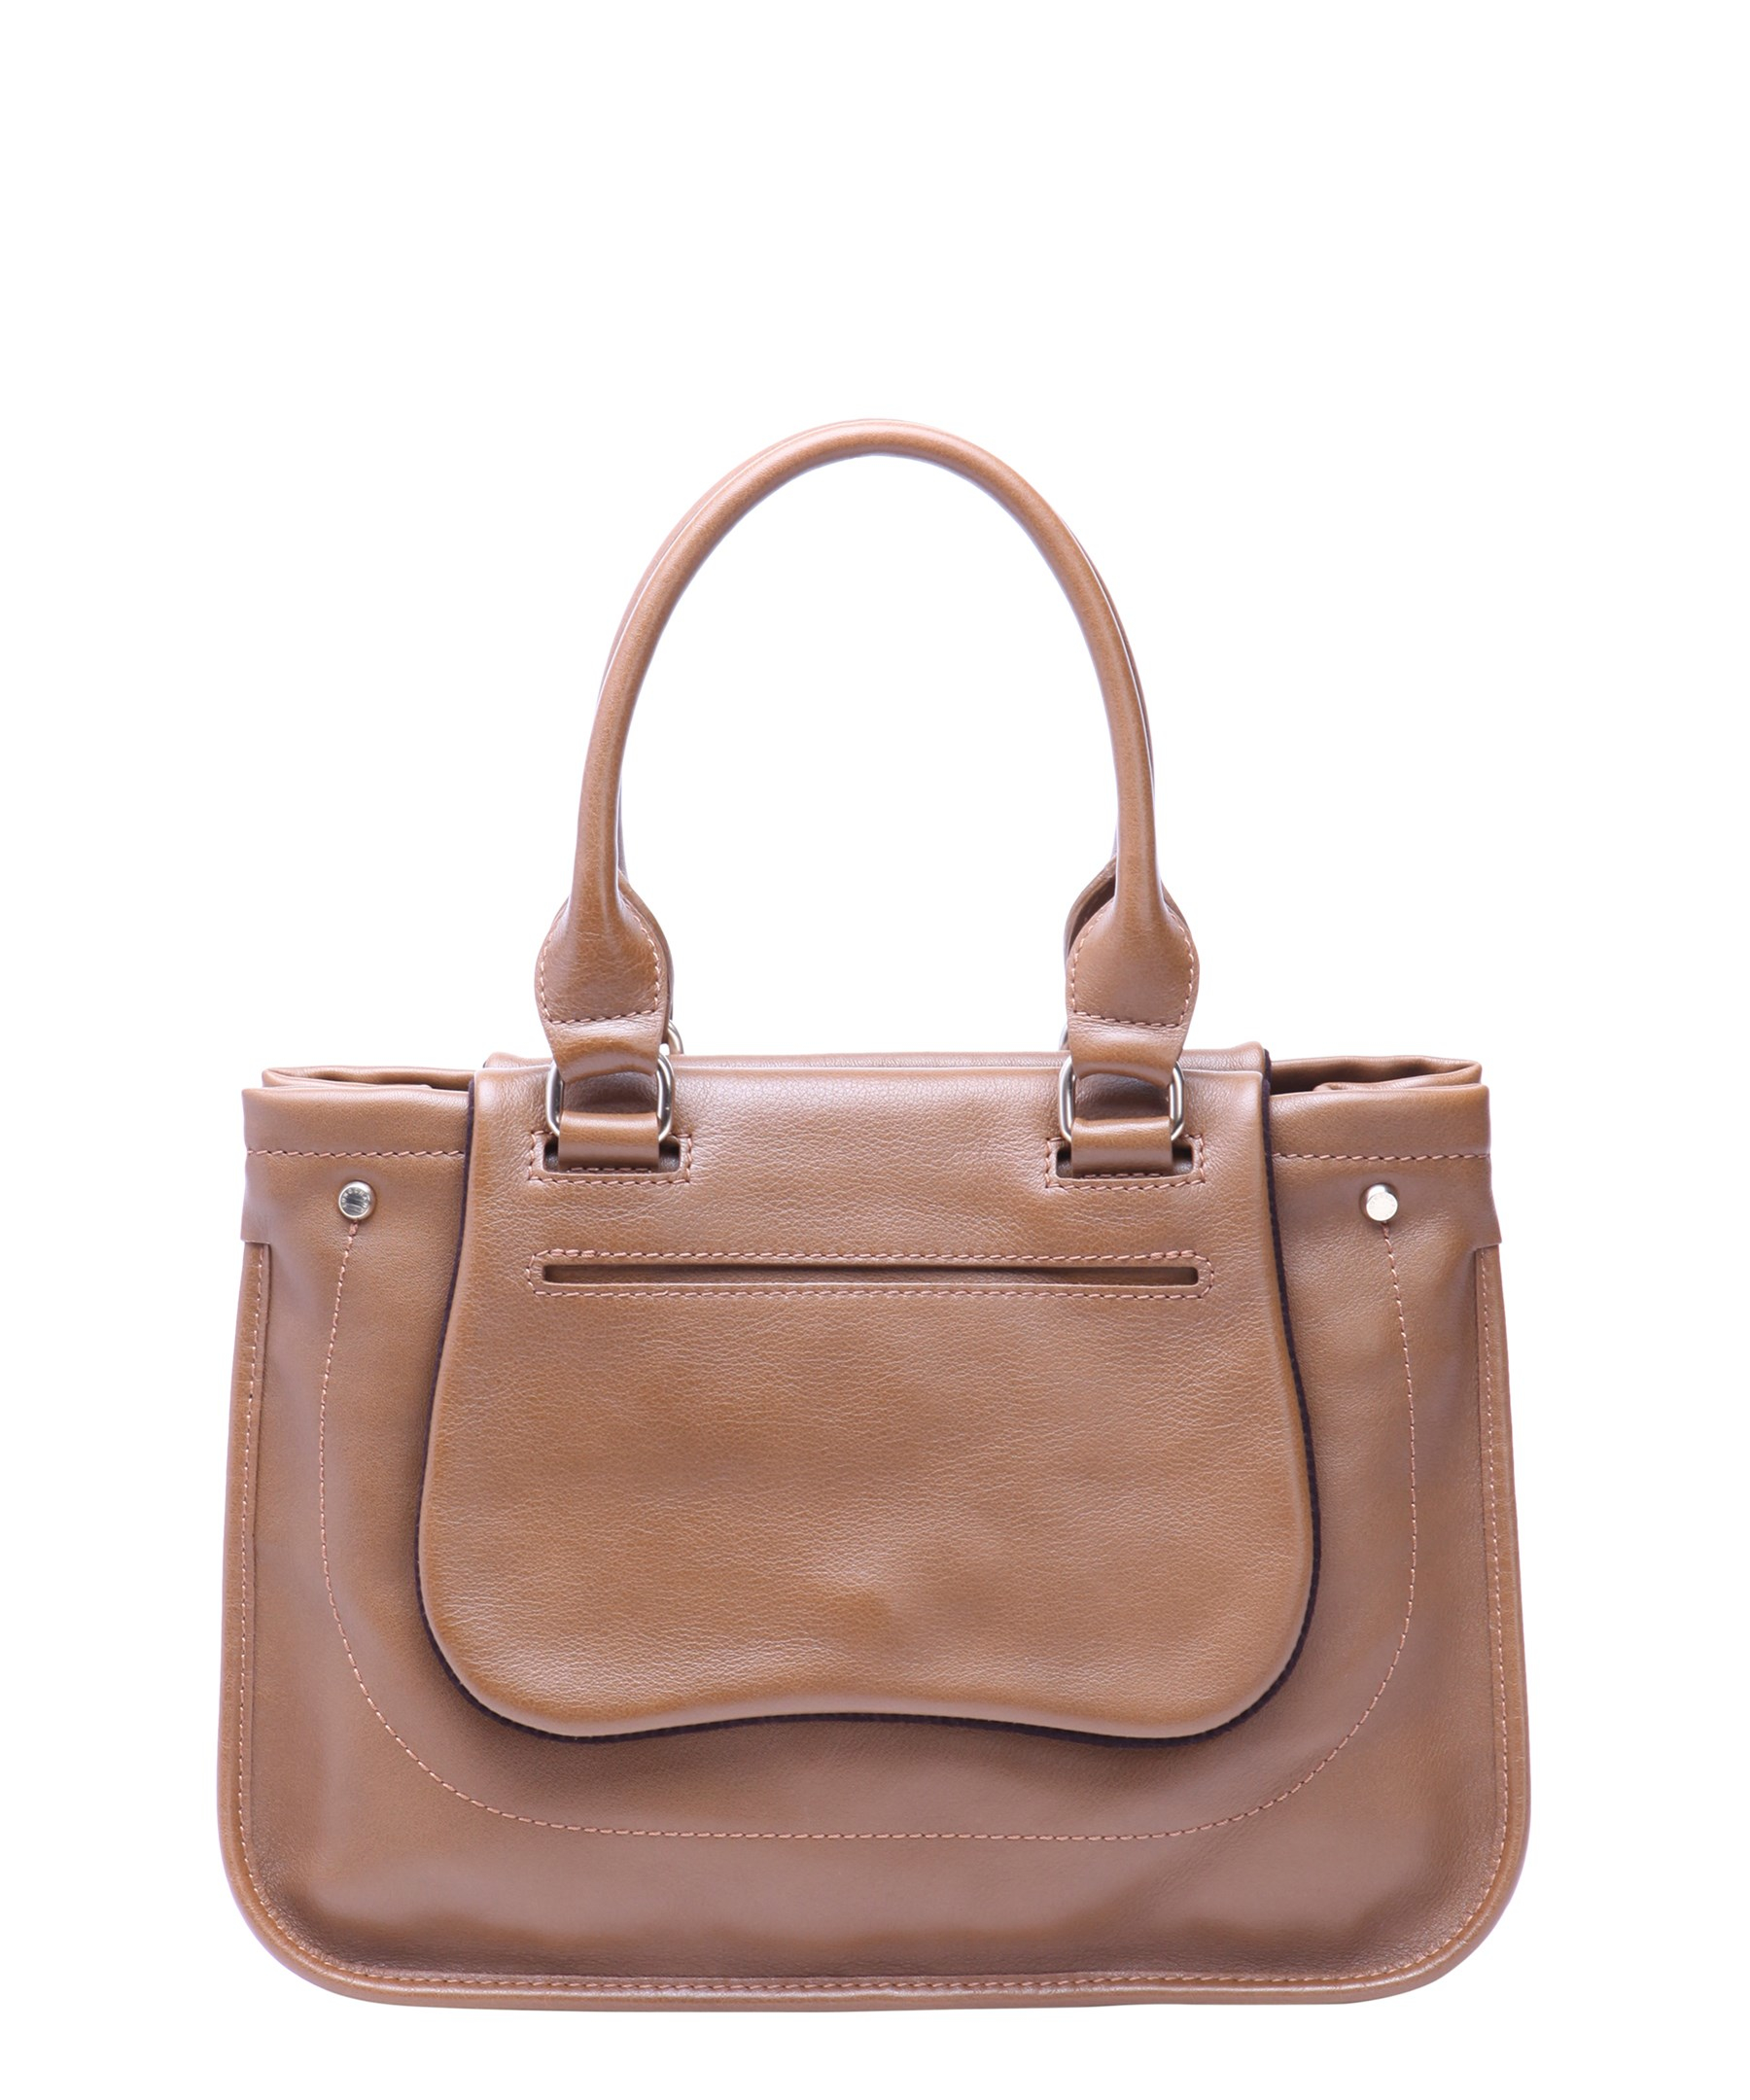 Longchamp Laukut Tori : Longchamp brown leather buckle front tote bag in lyst